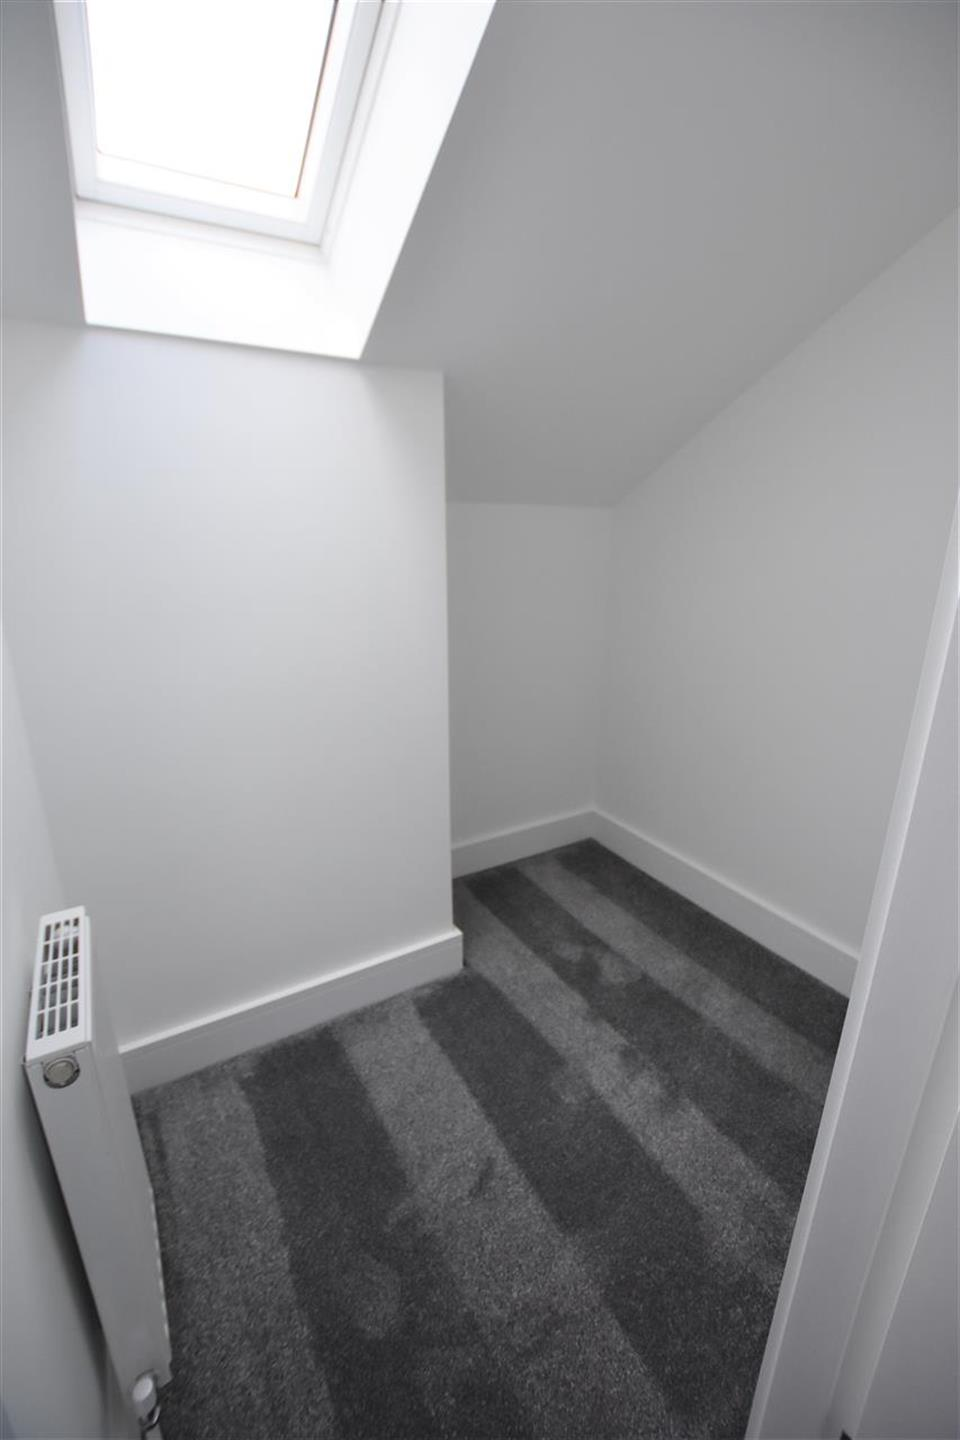 3 Bedroom House For Sale - Closet